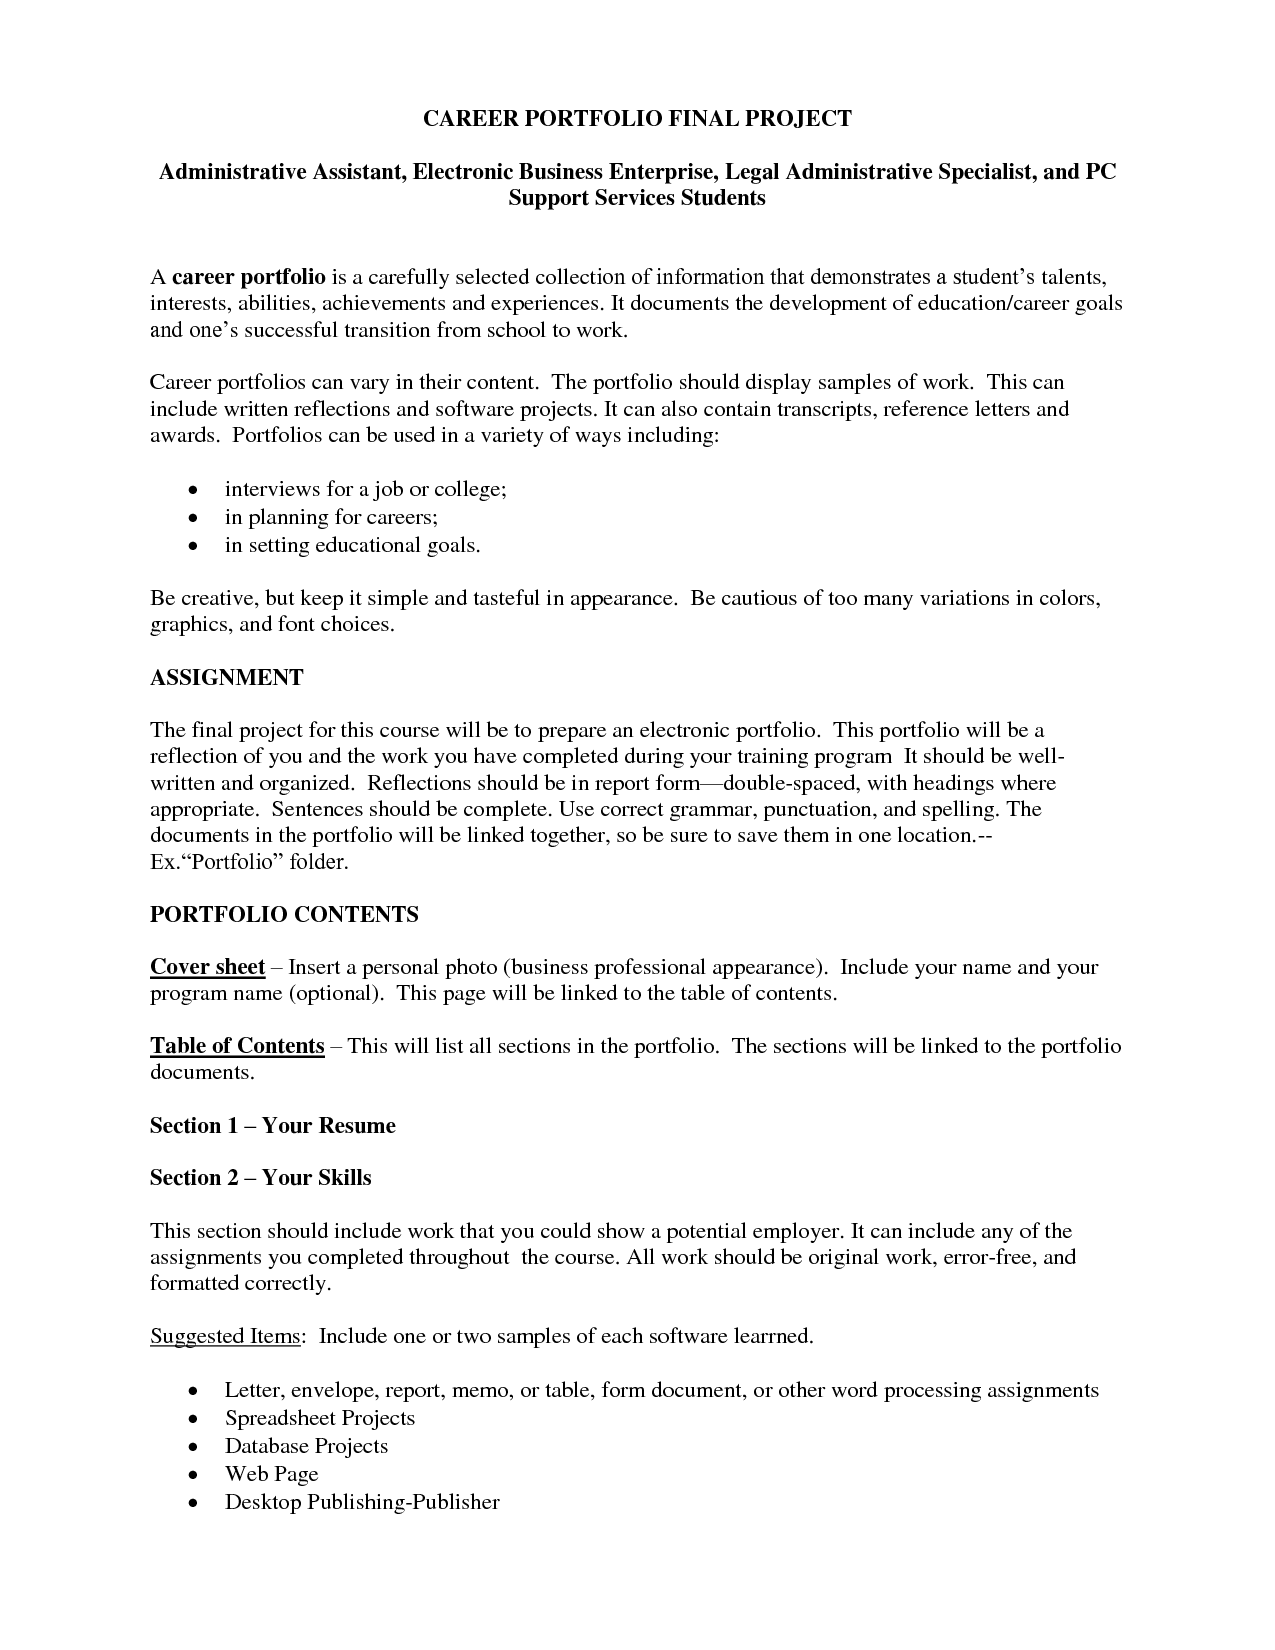 Delightful Legal Administrative Resume Samples   Http://ersume.com/legal Administrative  Legal Administrative Assistant Resume